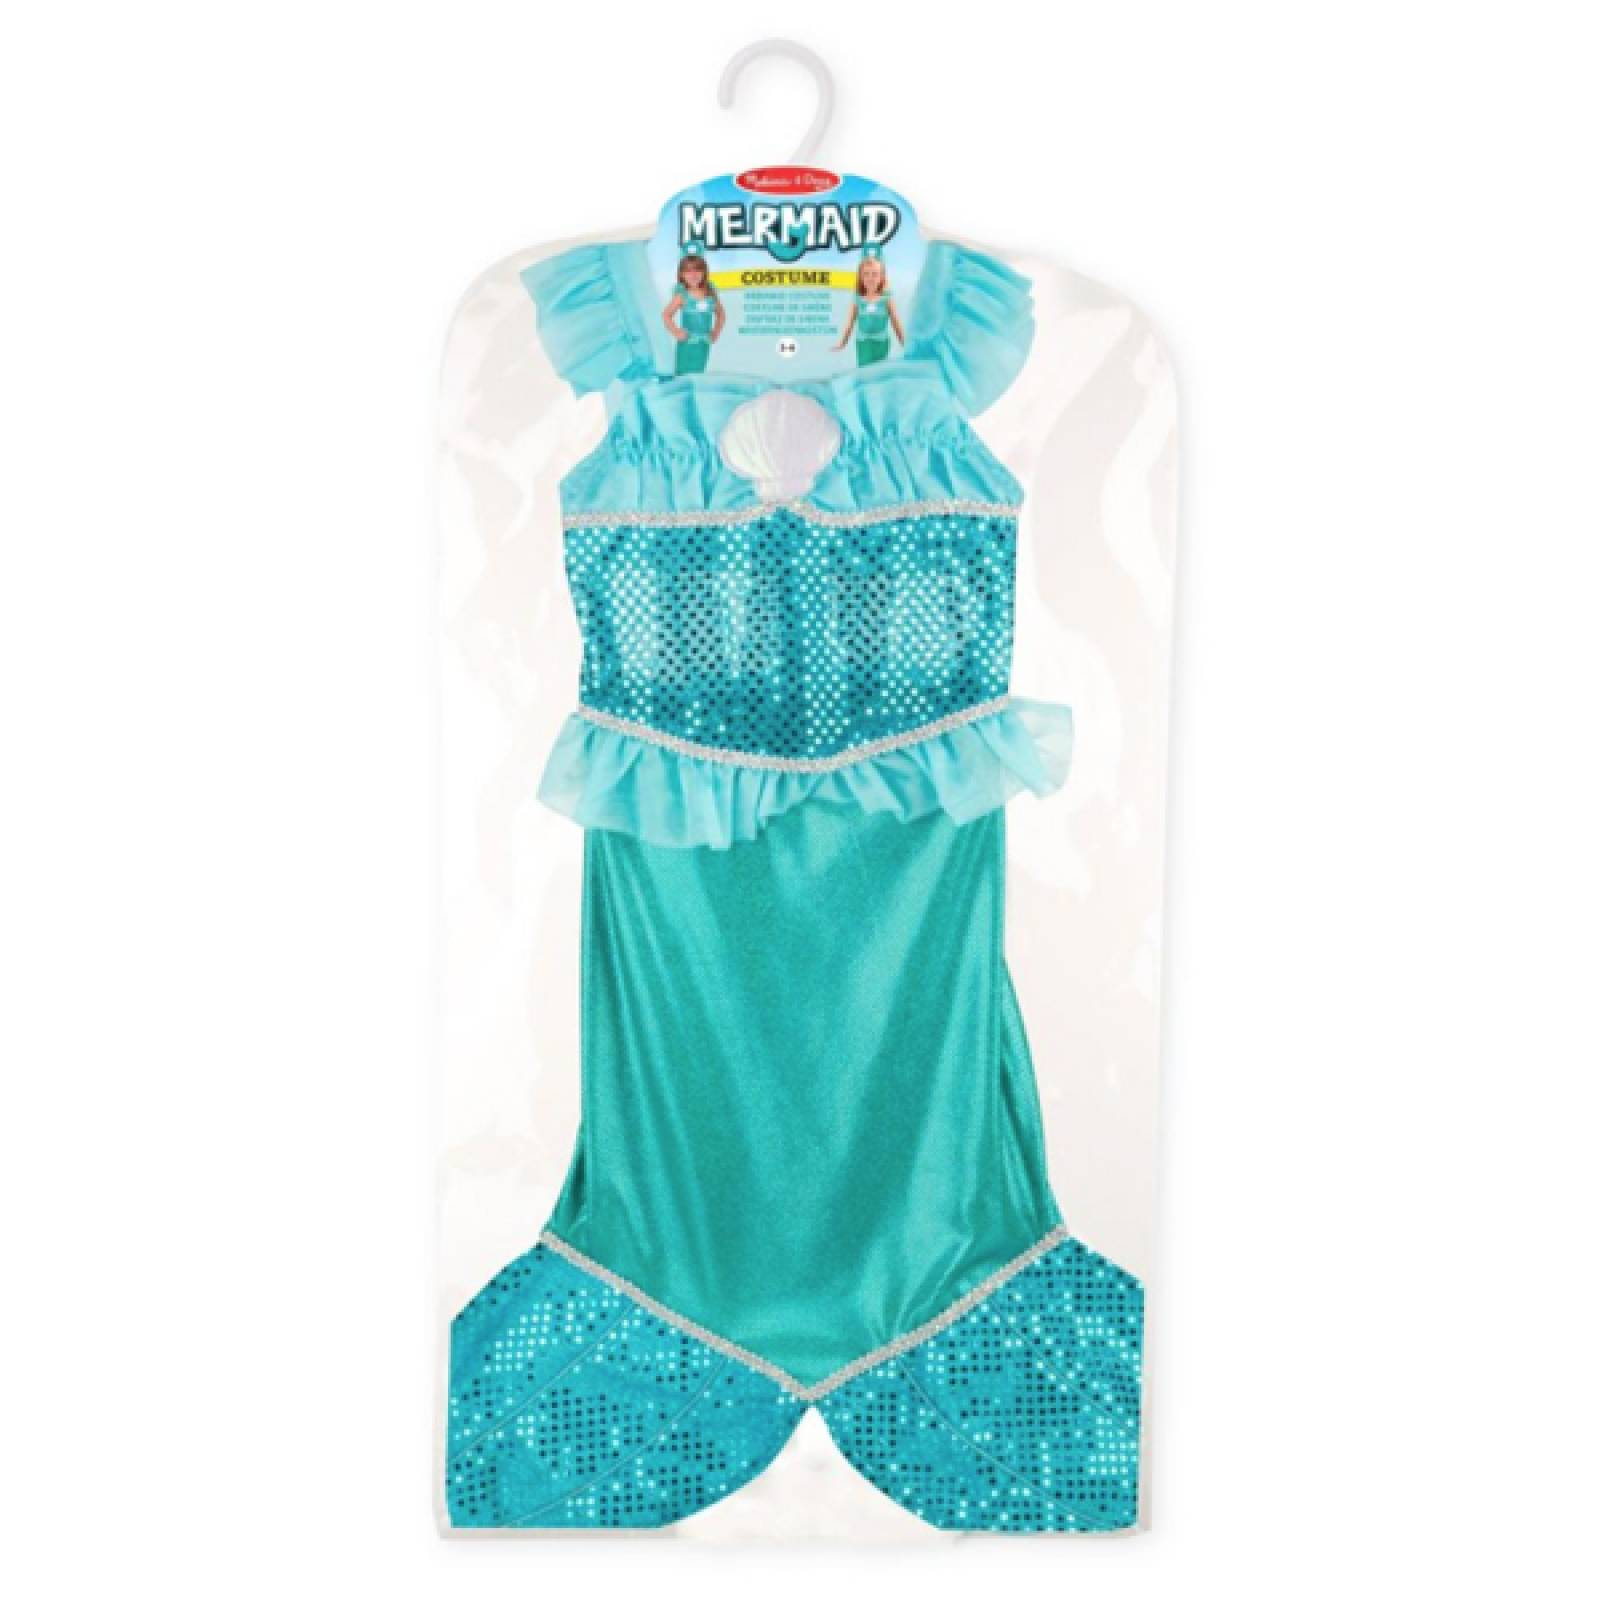 Fancy Dress Role Play Costume Set - Mermaid thumbnails